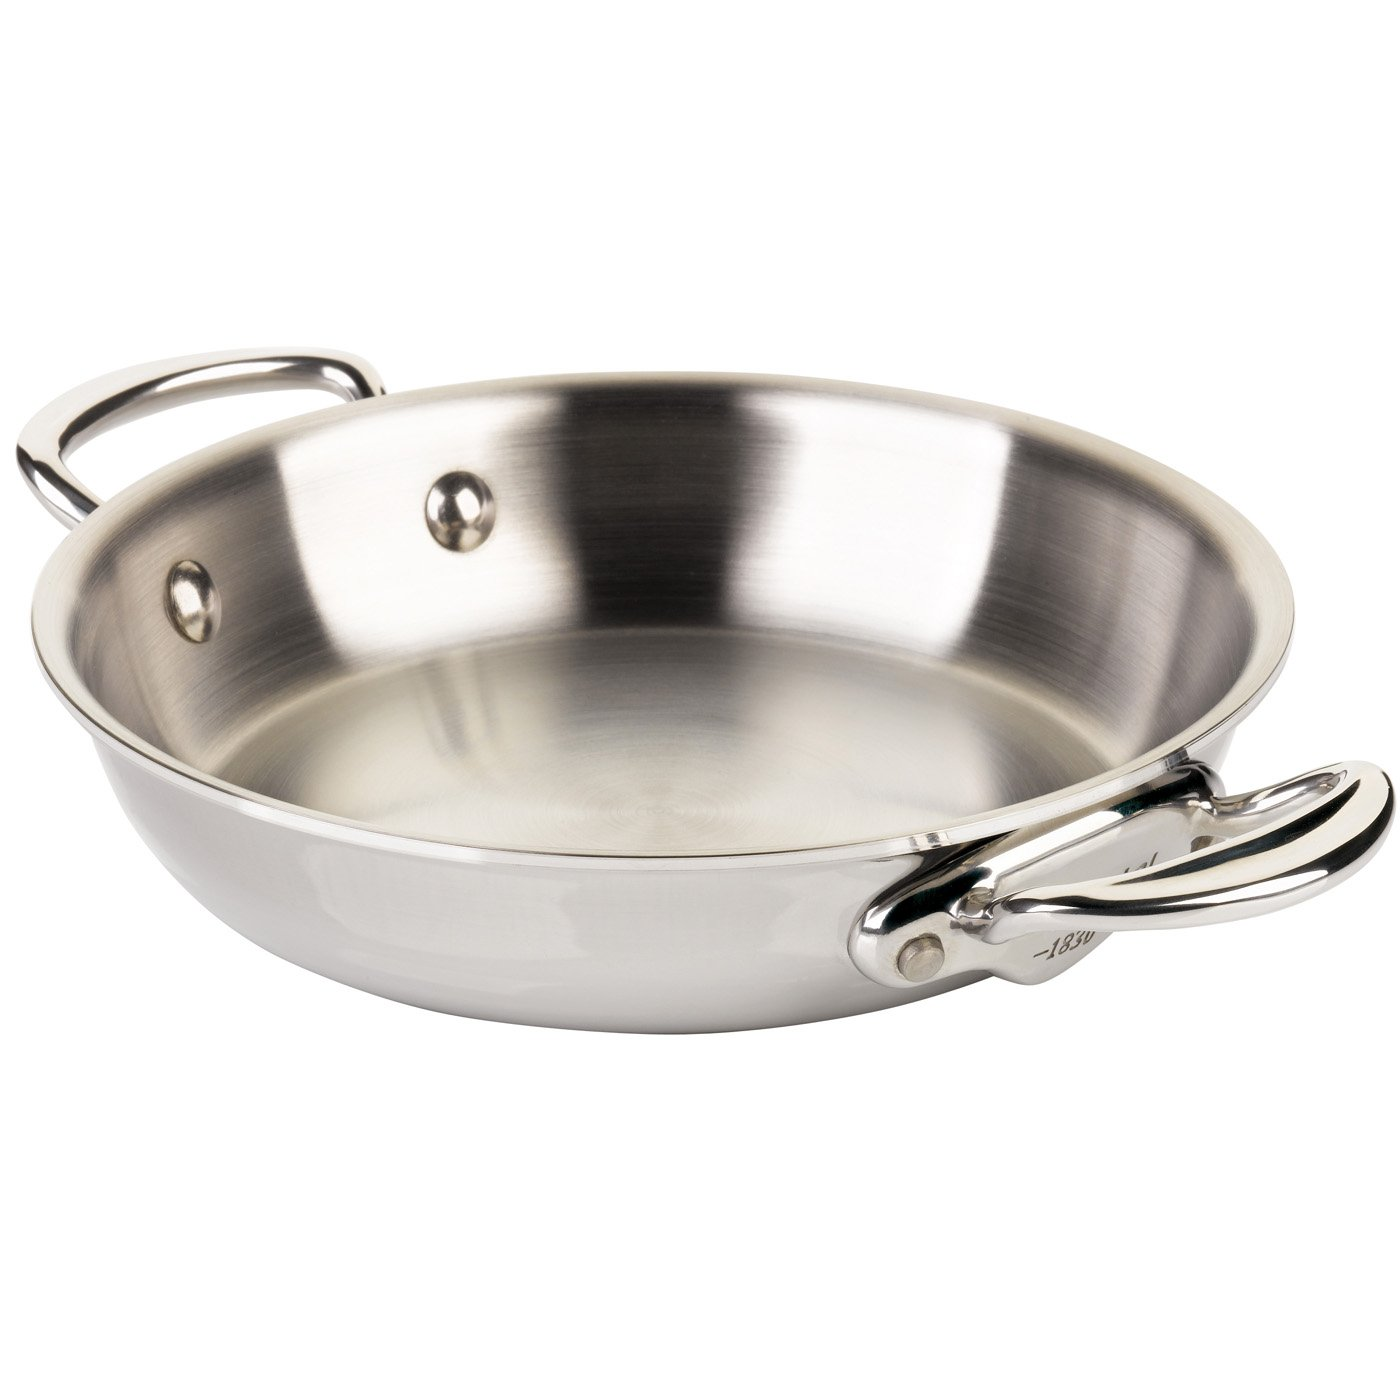 Mauviel 5238.28 28CM CAST SS HDL M'cook Round pan, 28'', Stainless Steel